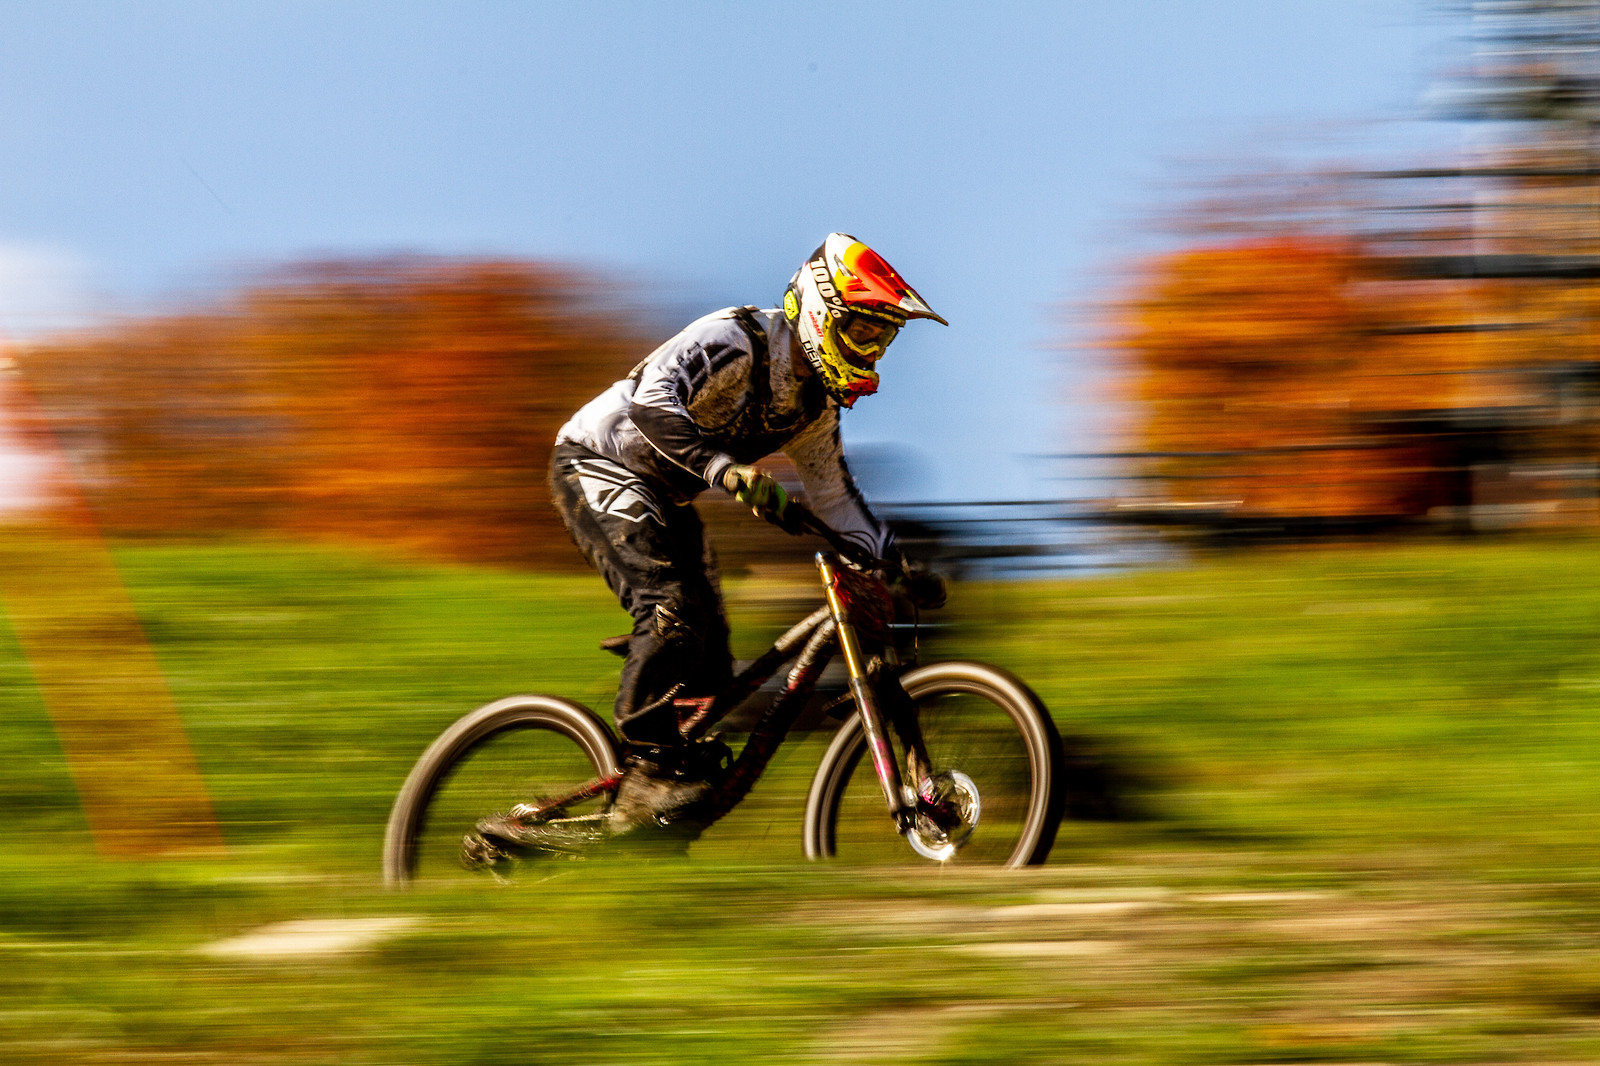 Dan O'Connor - JackRice - Mountain Biking Pictures - Vital MTB